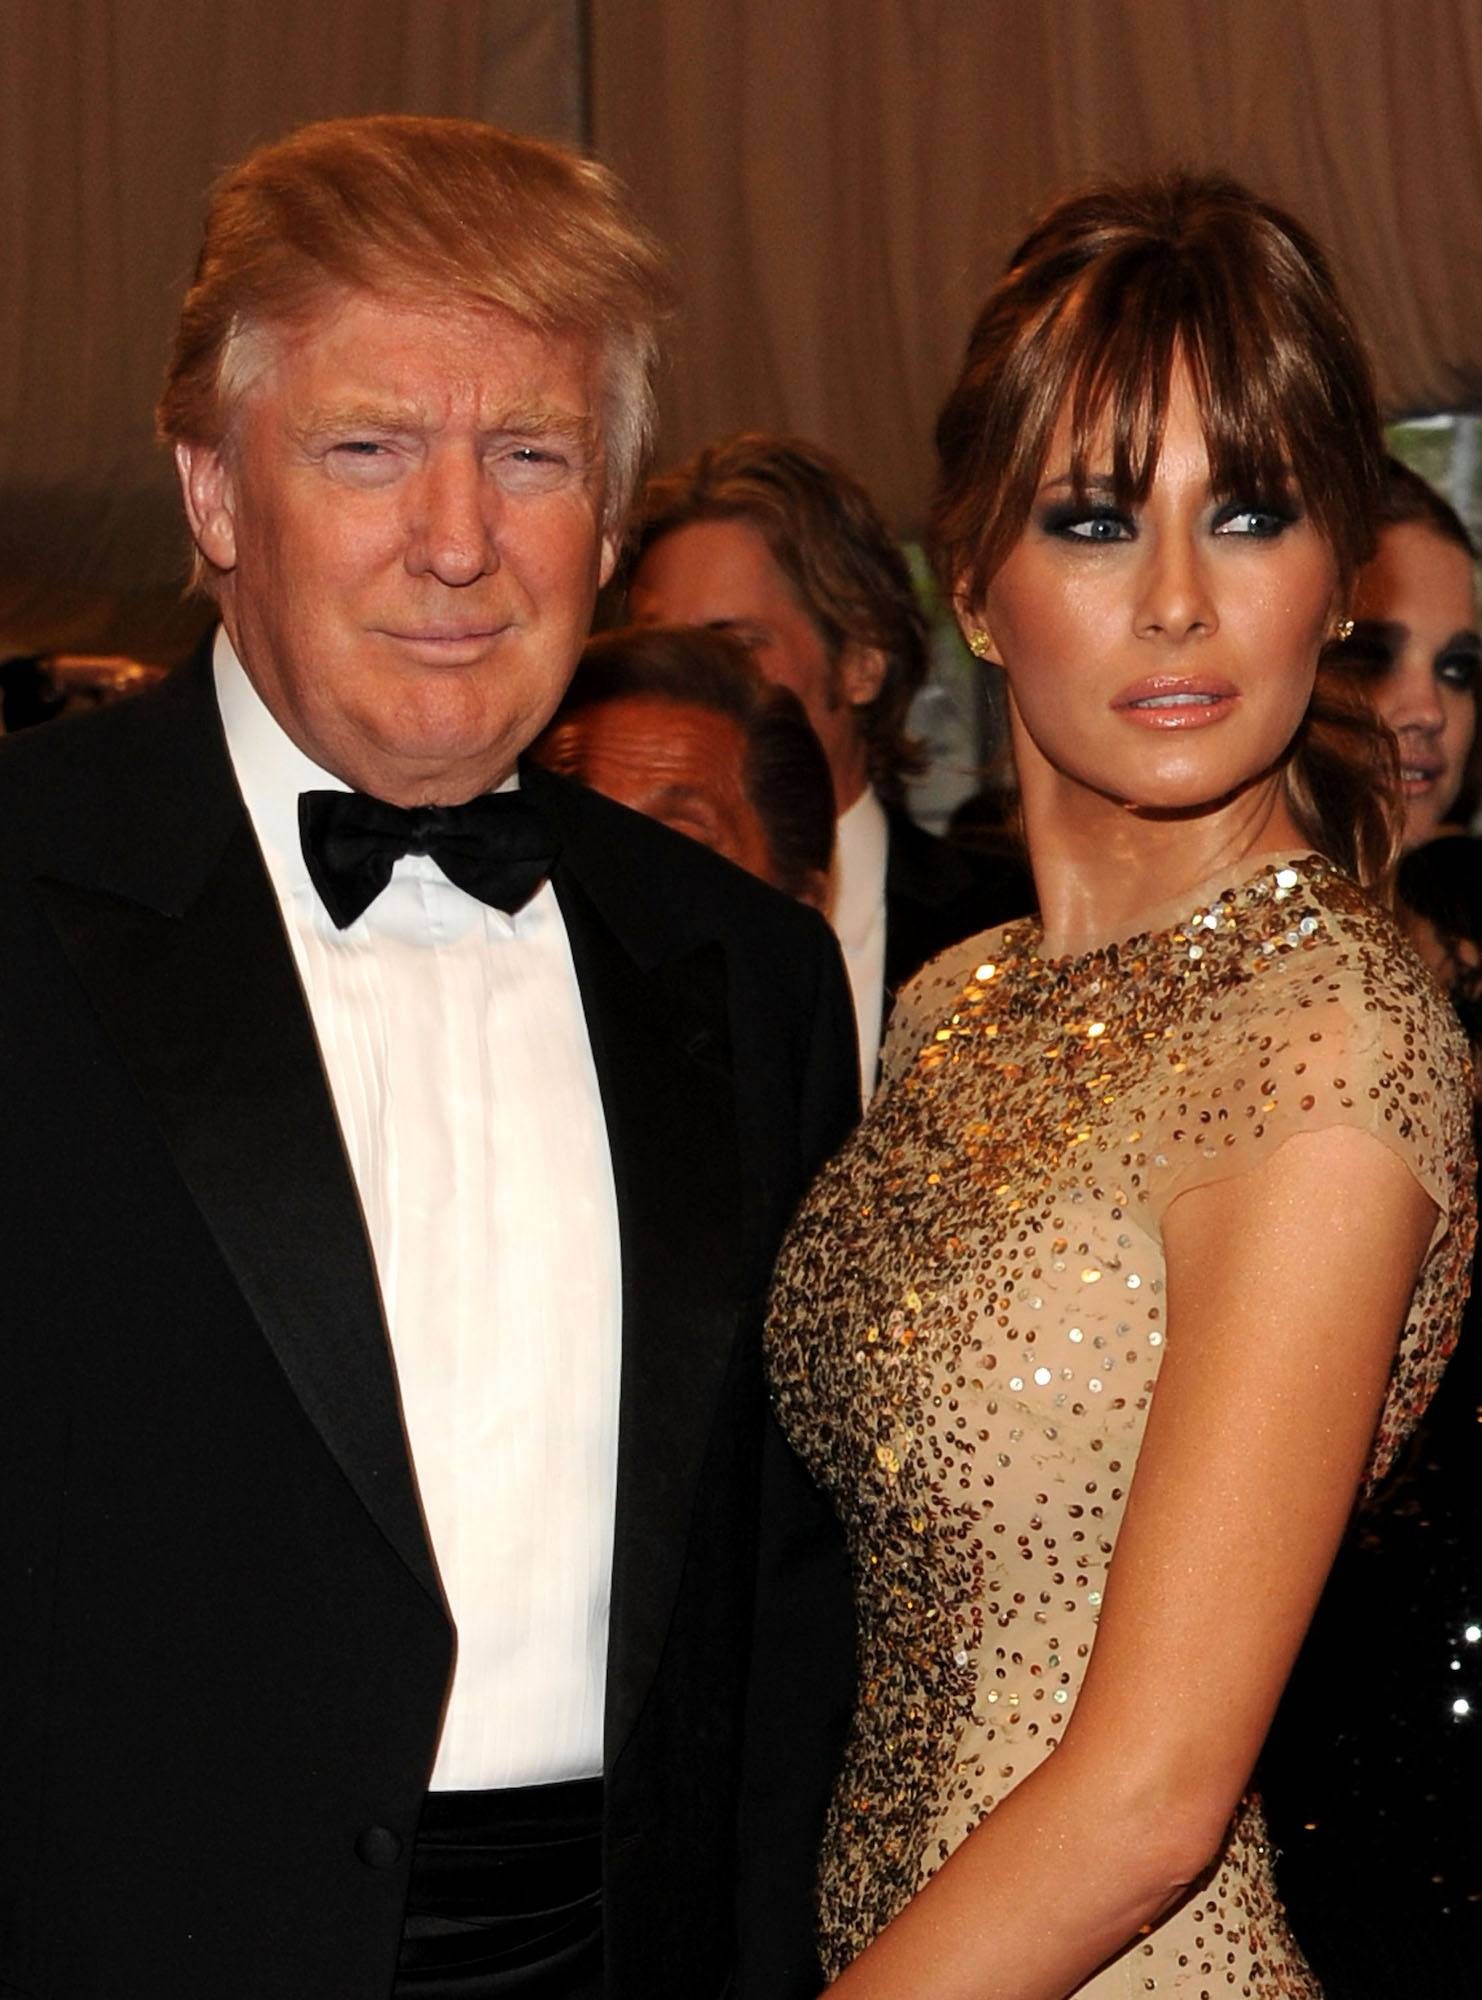 Donald Trump and Melania Trump attend the 'Alexander McQueen: Savage Beauty' Costume Institute Gala at The Metropolitan Museum of Art in 2011